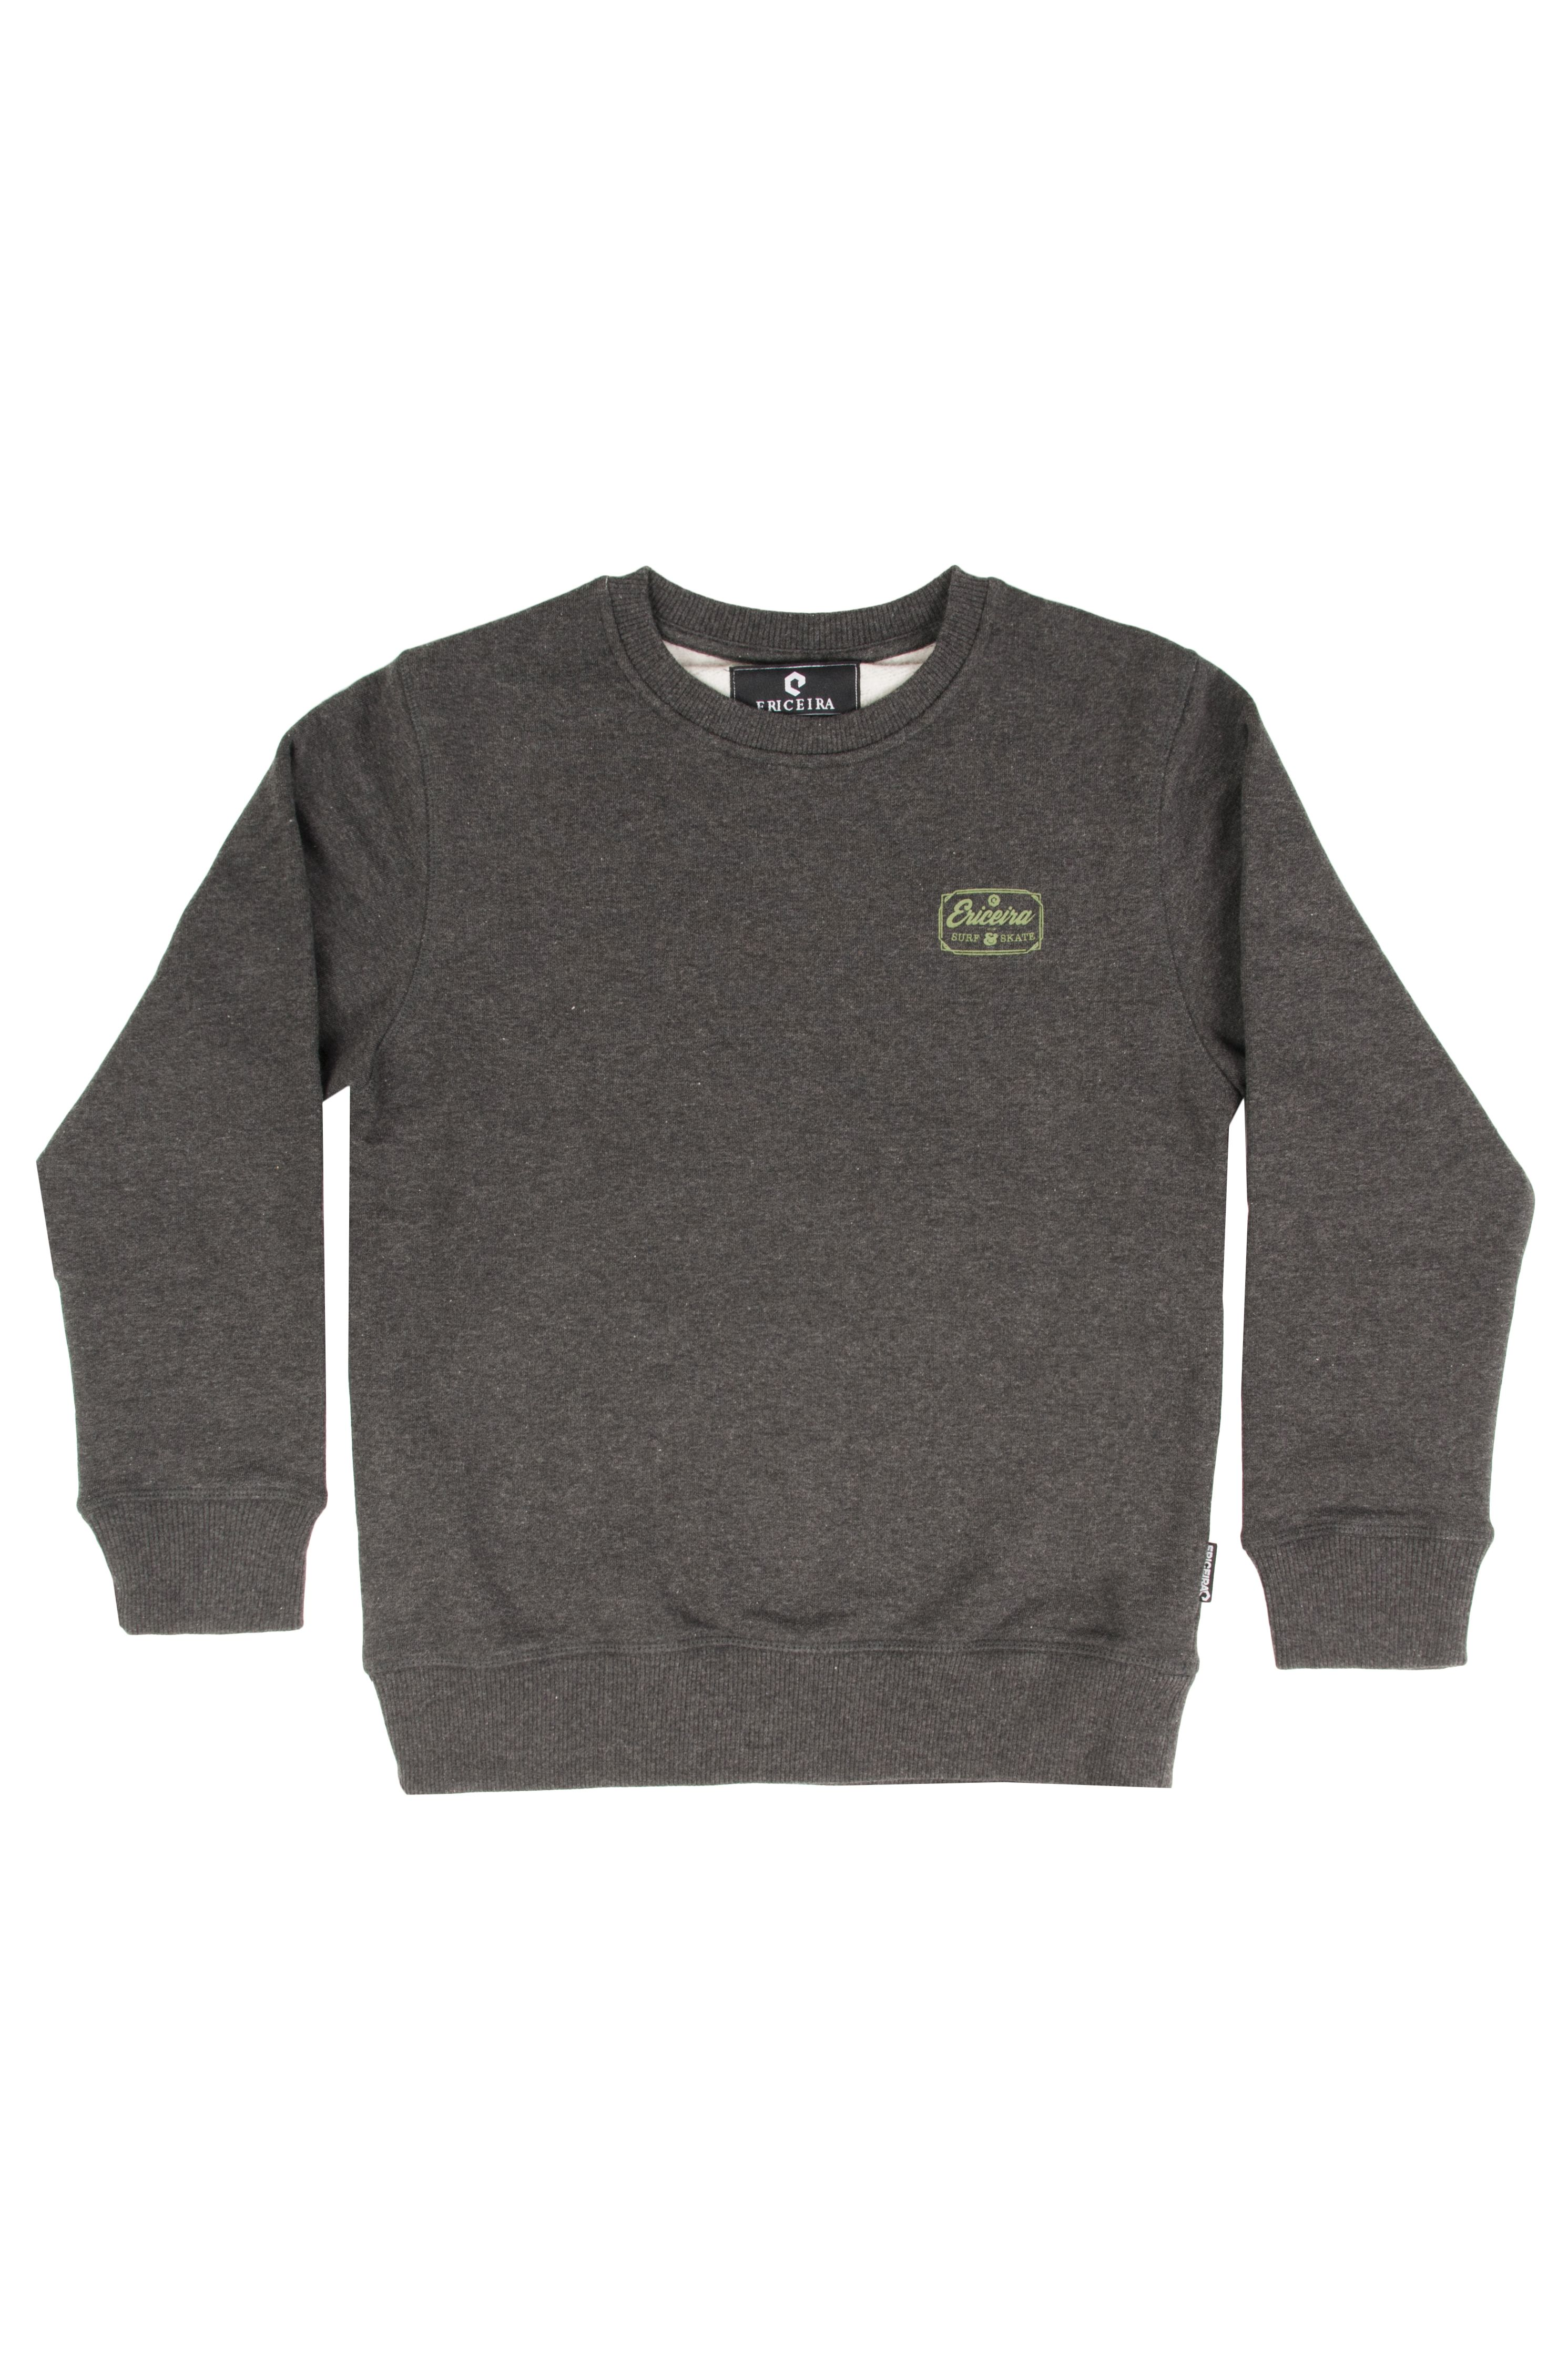 Ericeira Surf Skate Crew Sweat CLASSIC Charcoal Heather